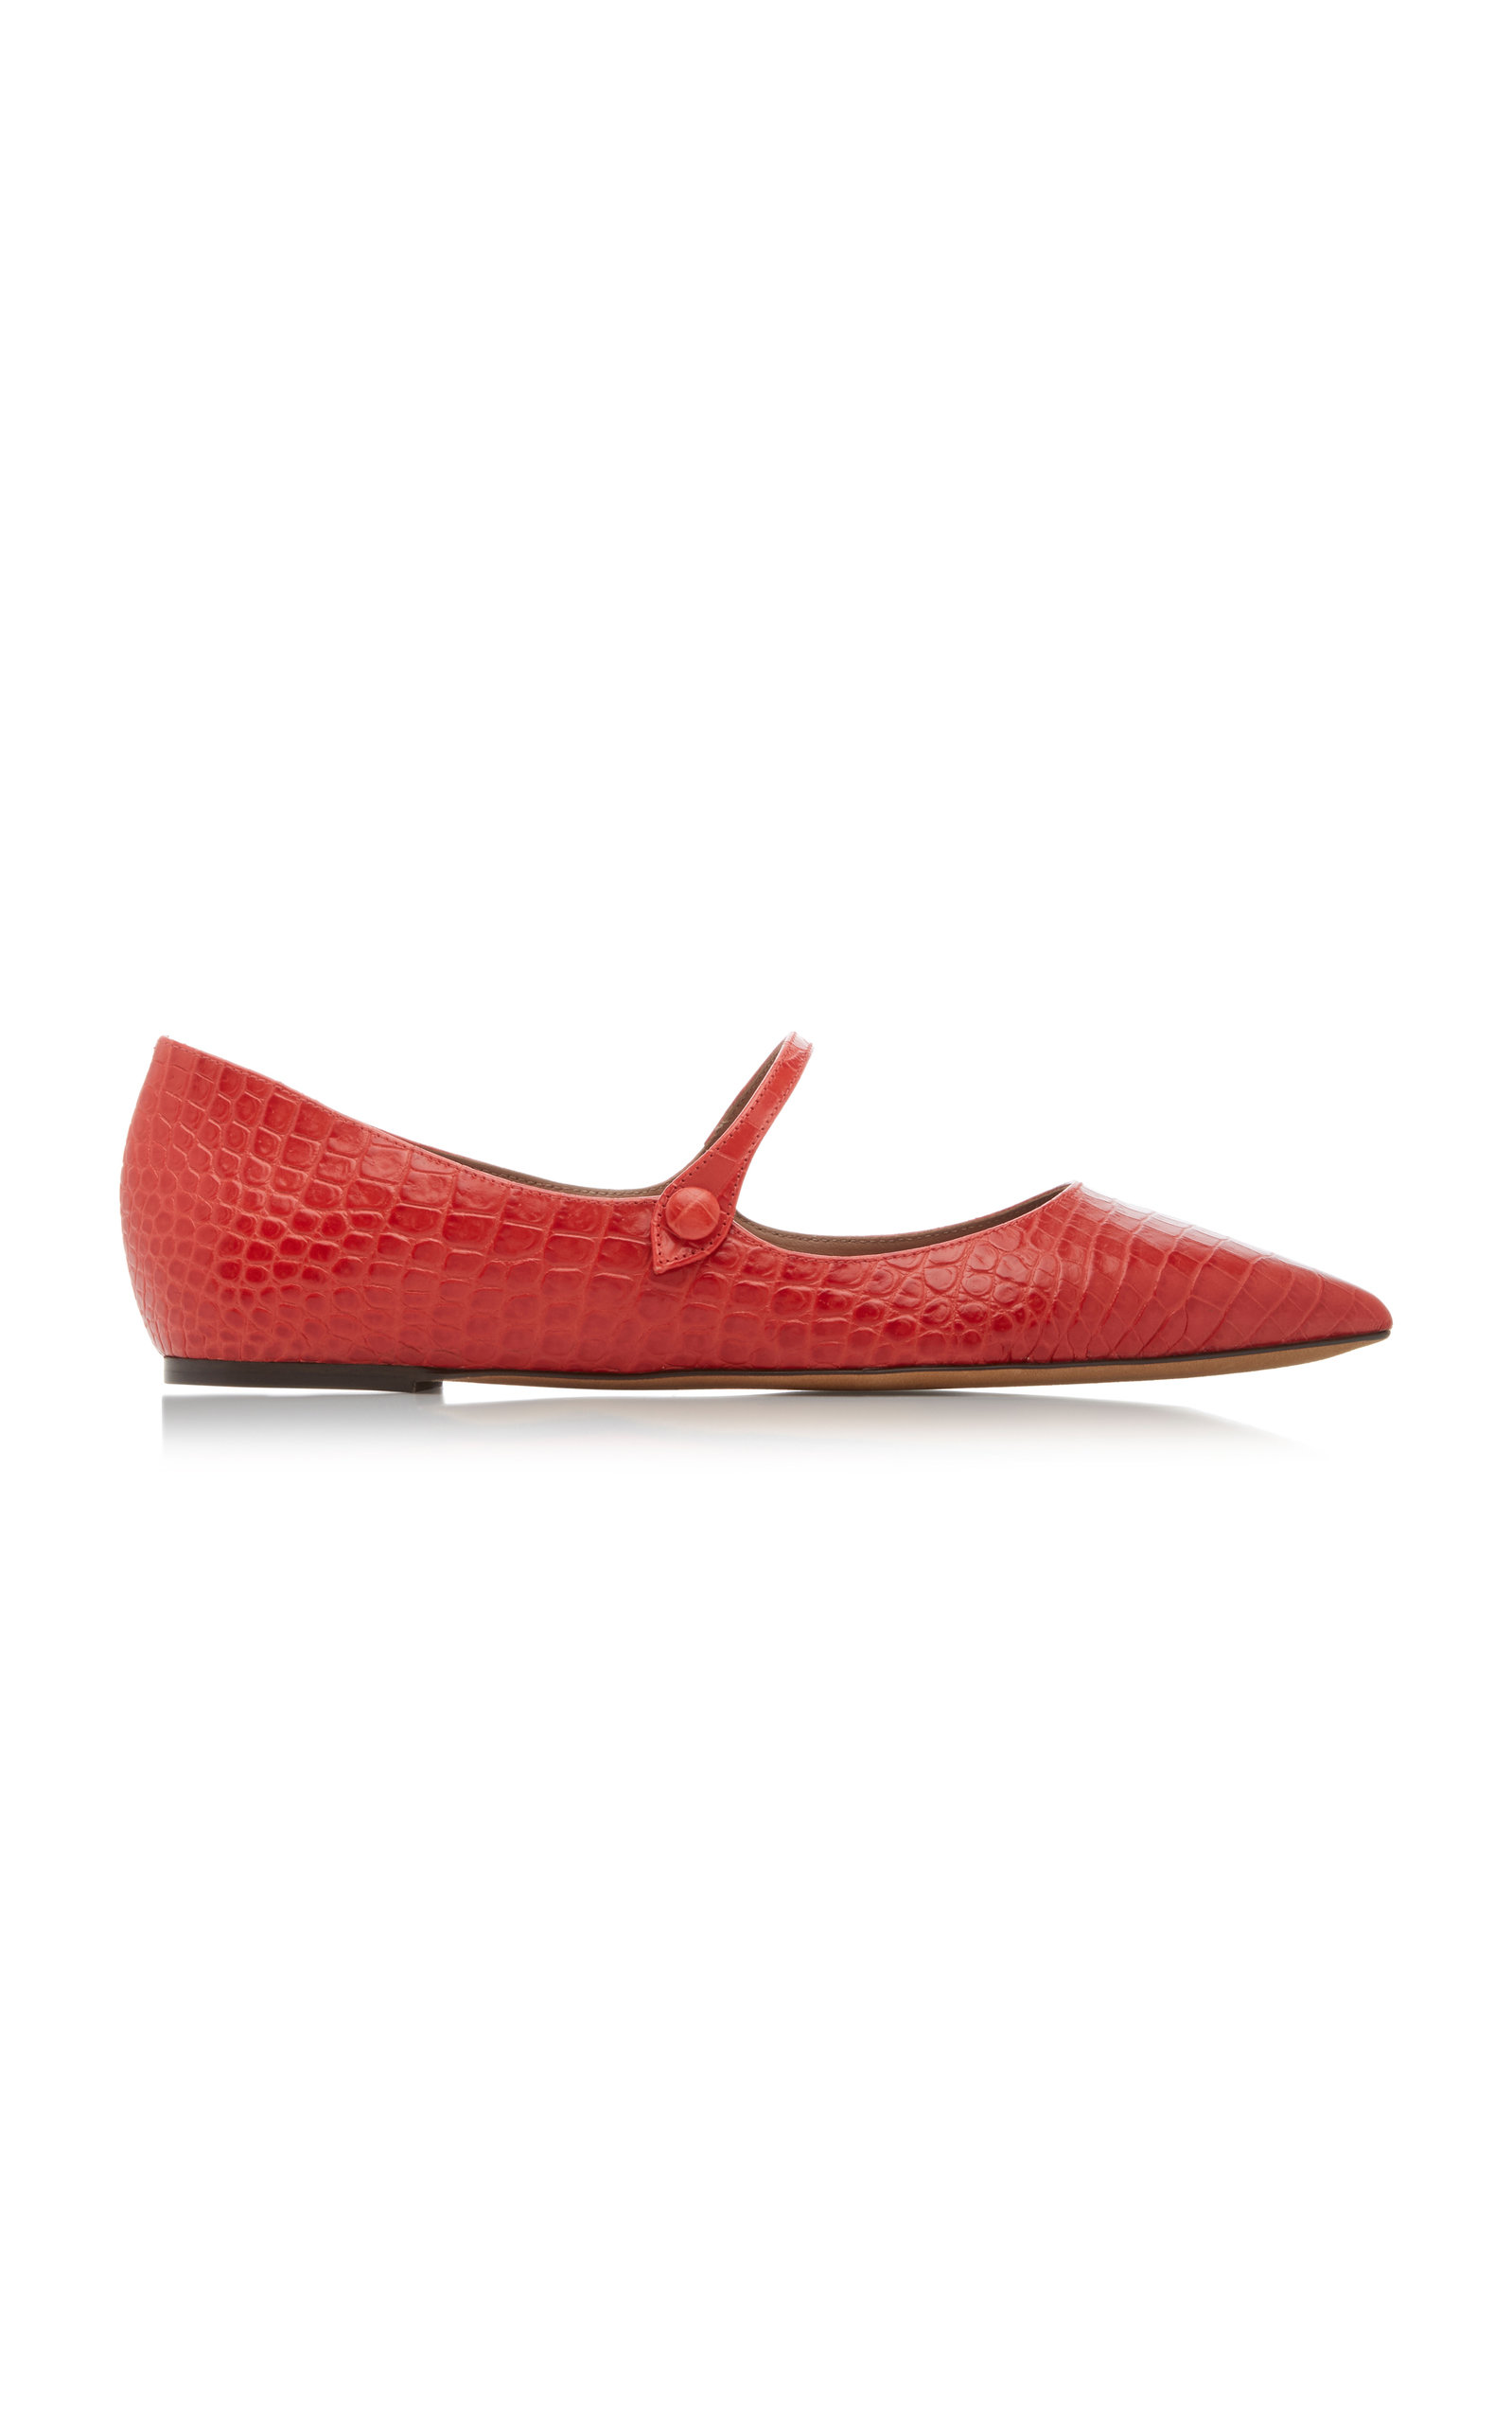 Tabitha Simmons | Tabitha Simmons Hermione Metallic Croc-Embossed Leather Flats | Clouty